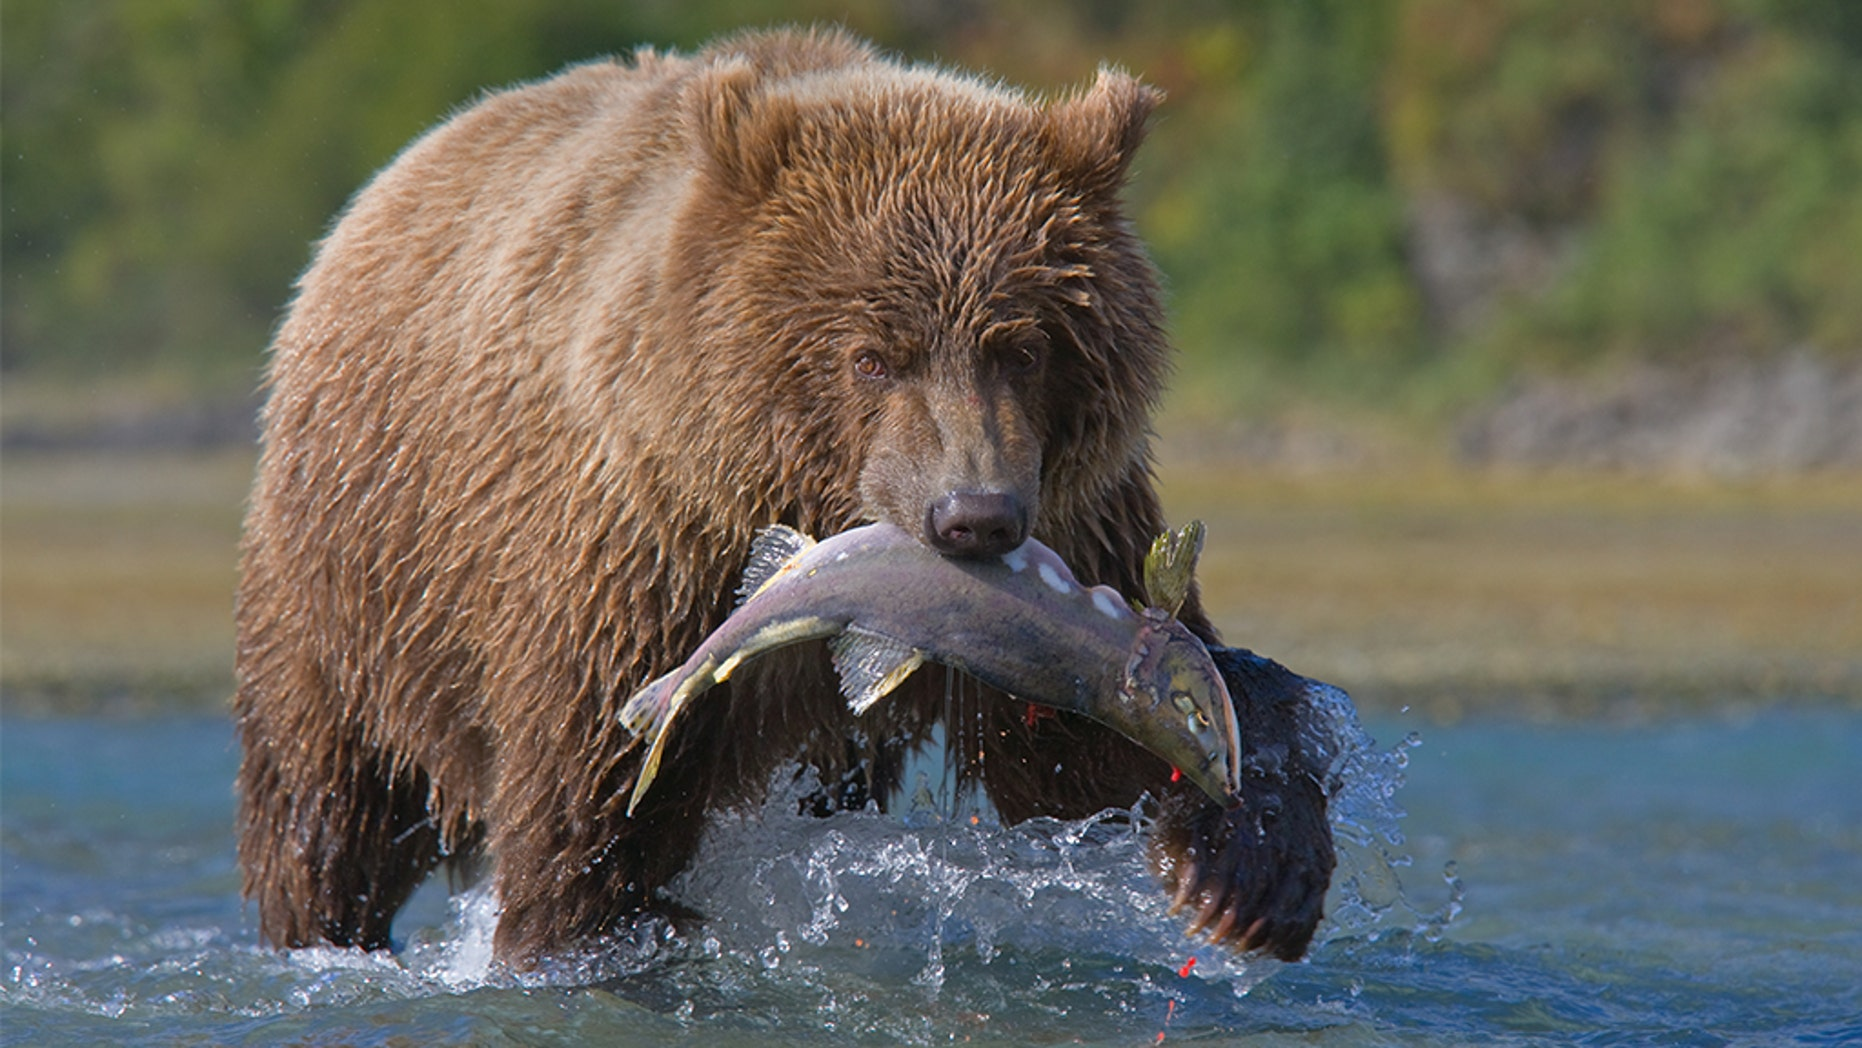 A wildlife center in Oregon is providing the opportunity for scorned lovers to name a salmon after their ex and have it fed to brown bears.